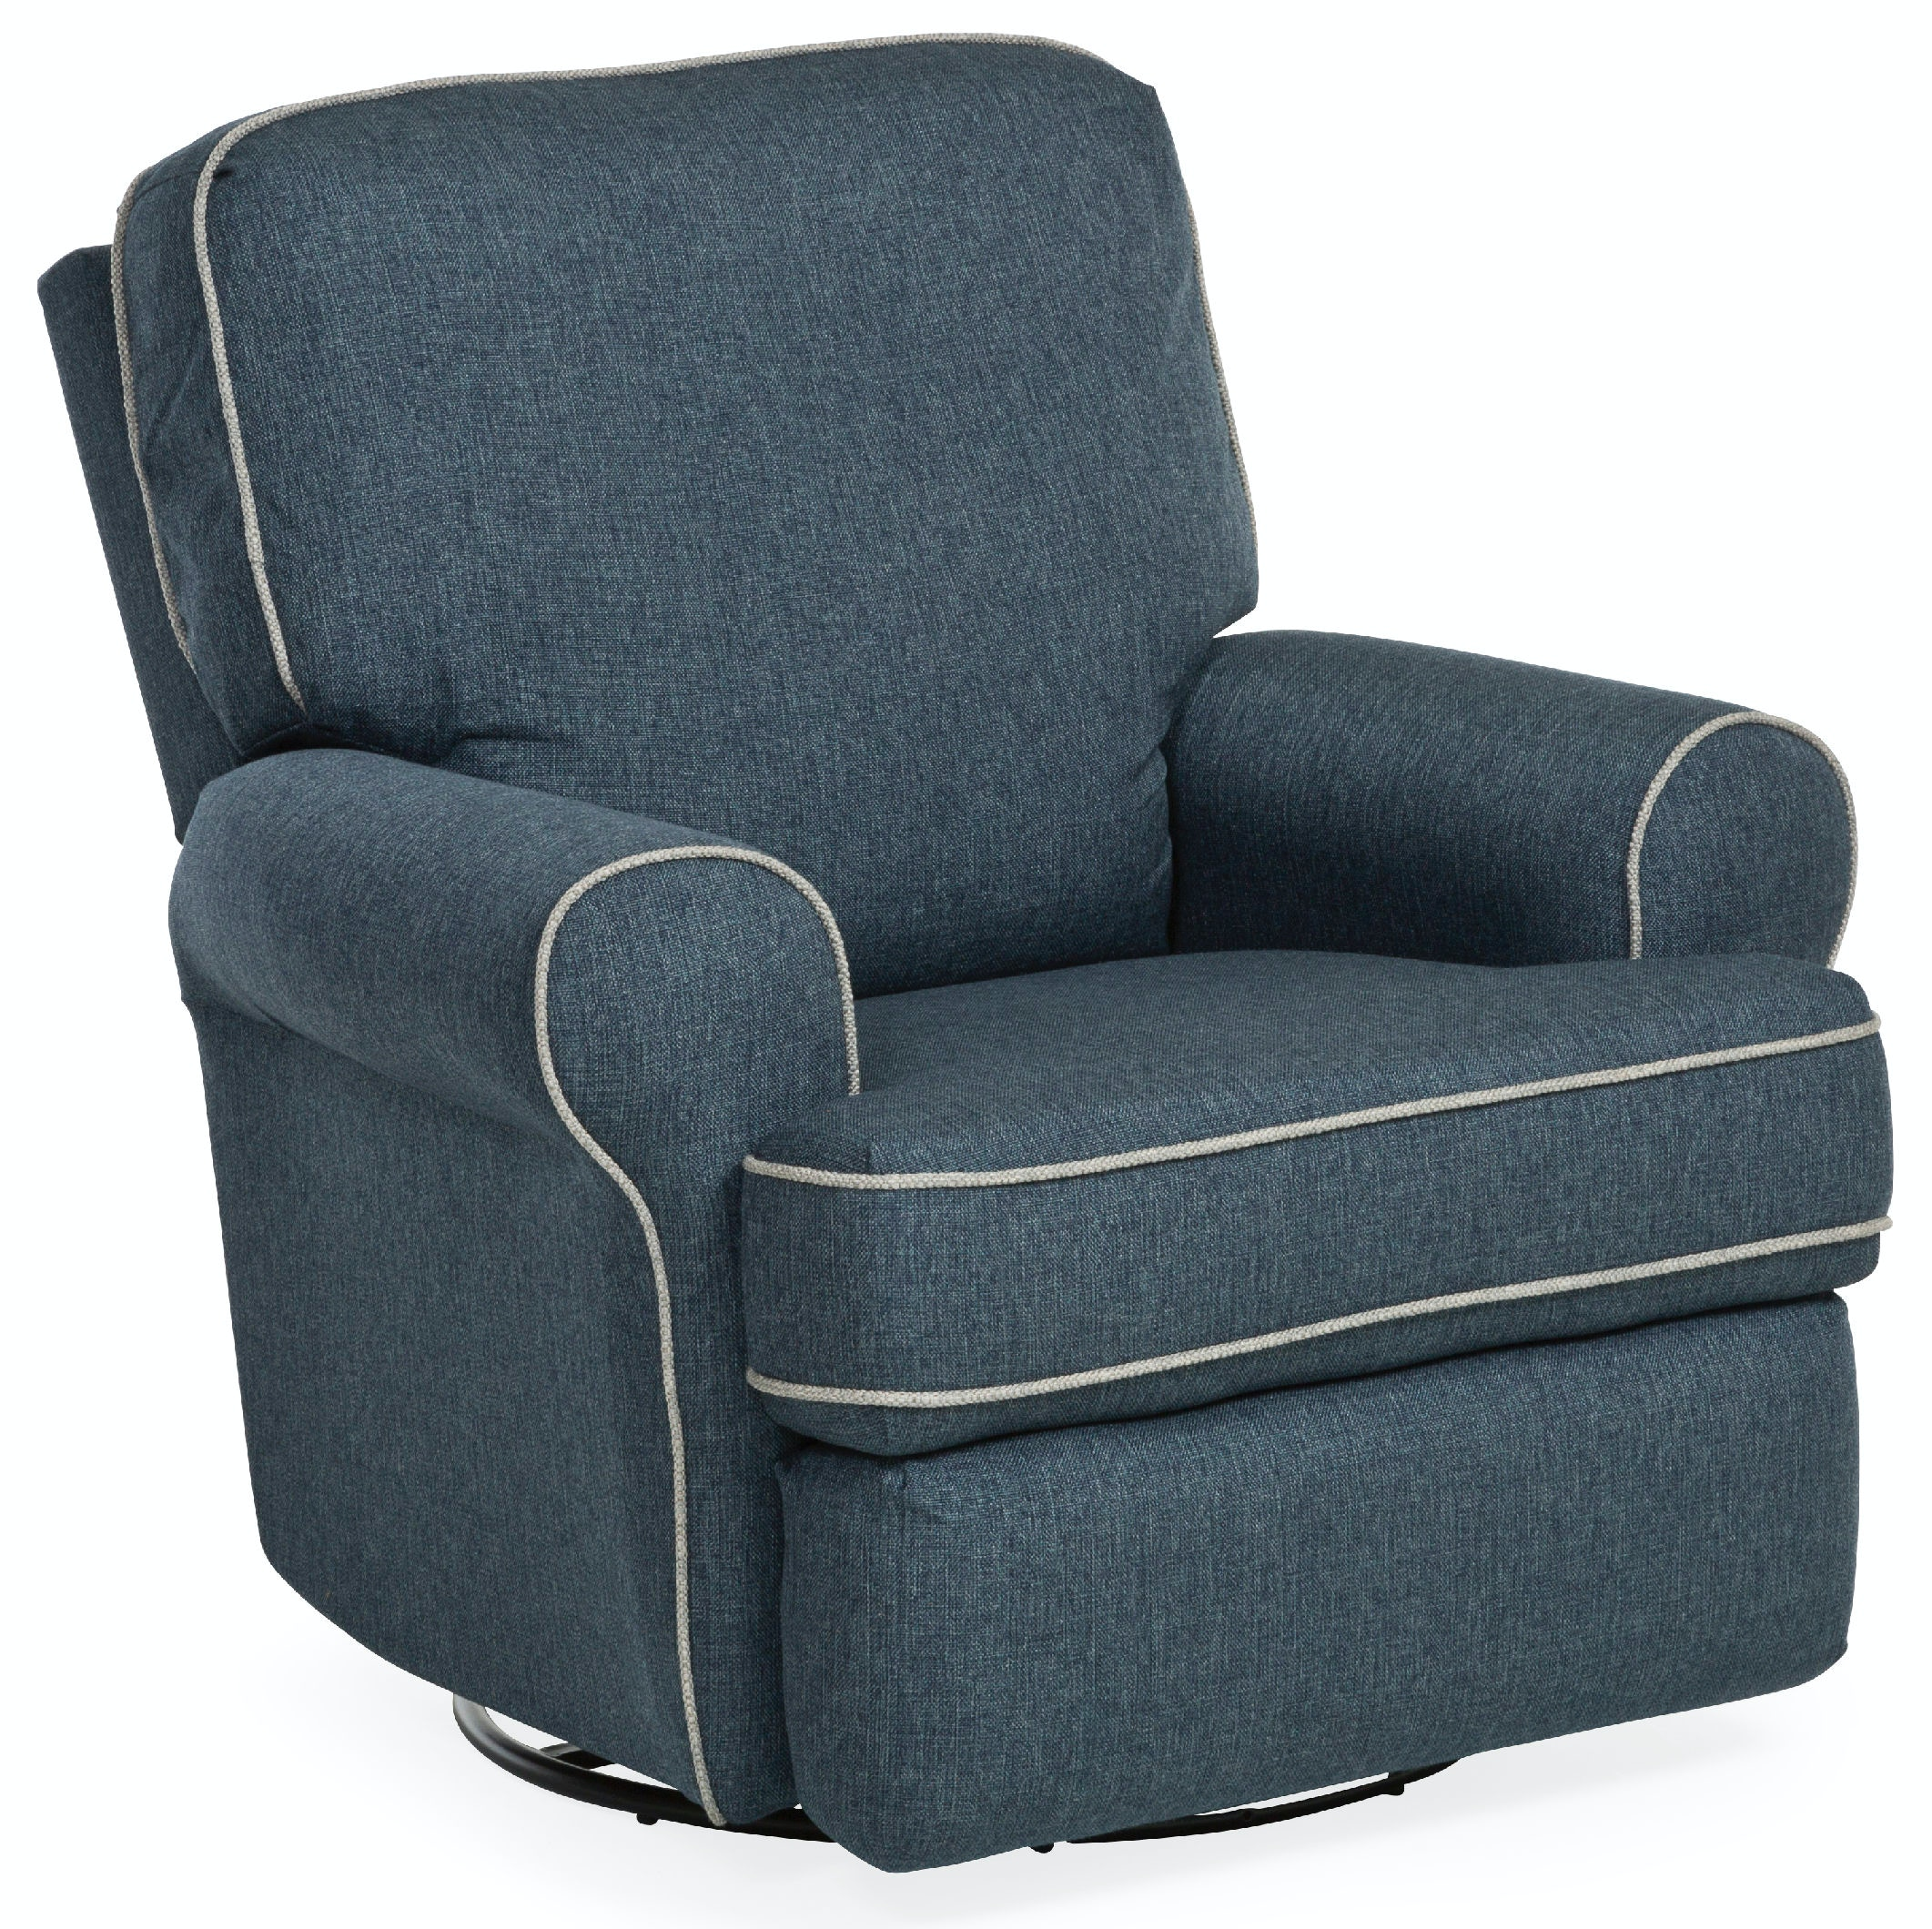 Tryp Swivel/Glider Recliner Chair ST471298  sc 1 st  Star Furniture & Baby Tryp Swivel/Glider Recliner Chair islam-shia.org